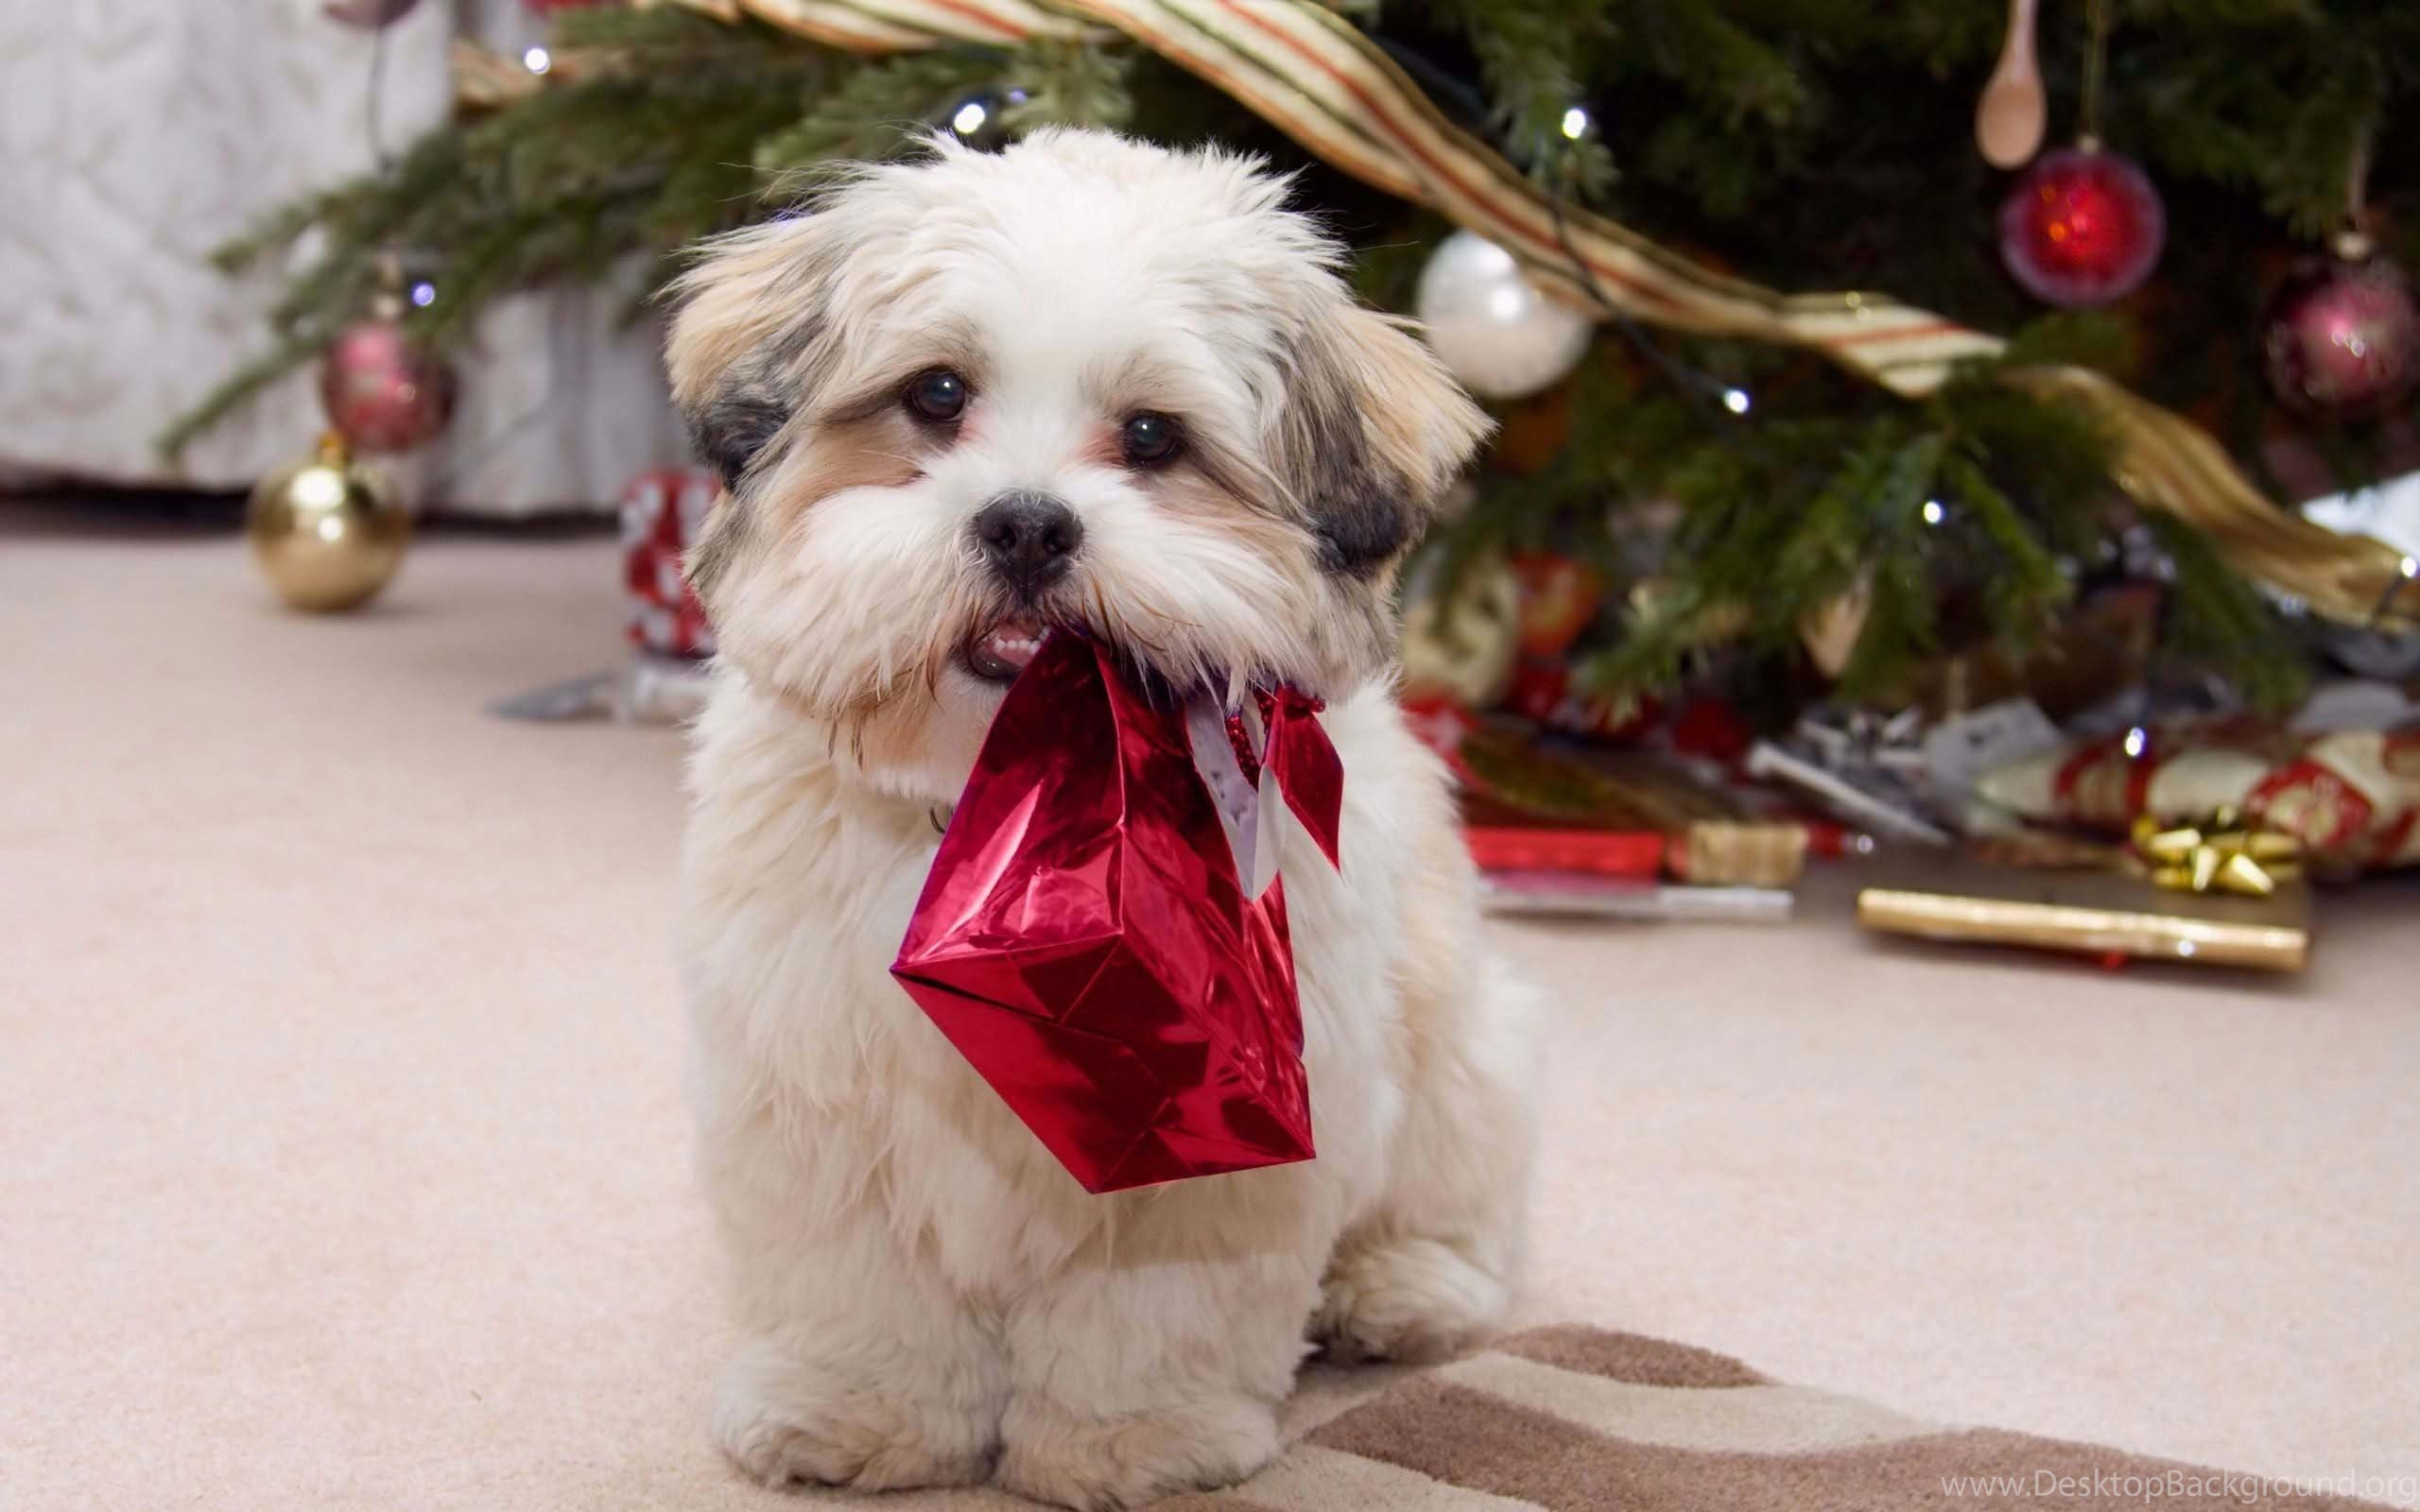 Cute Christmas Dog Wallpapers And Pictures. Chipsu Dogs Pictures ...